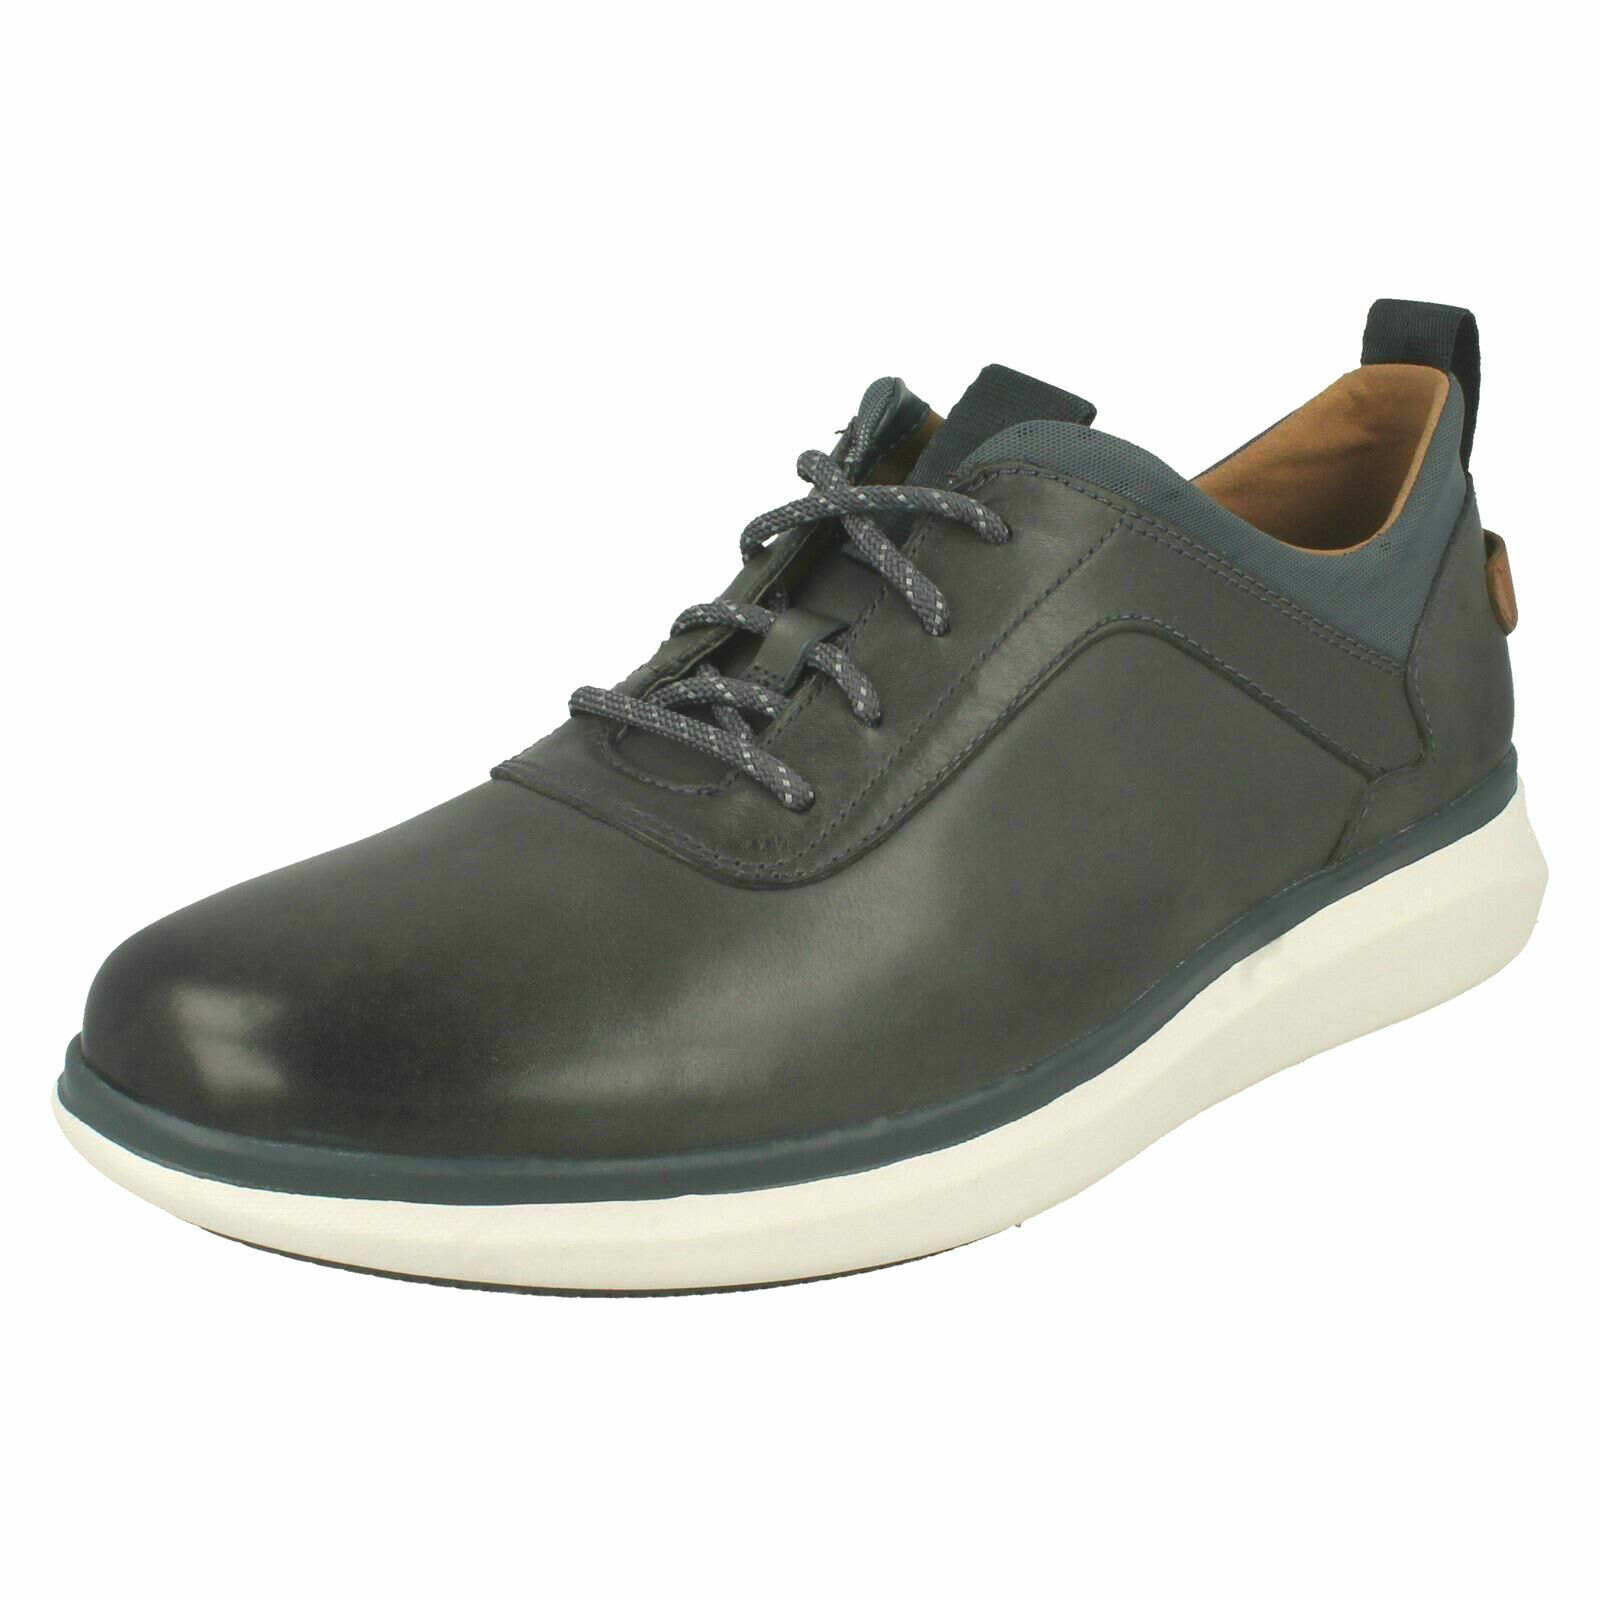 Mens Clarks Unstructured Un Globe Vibe Casual Lace Up shoes - G Fitting